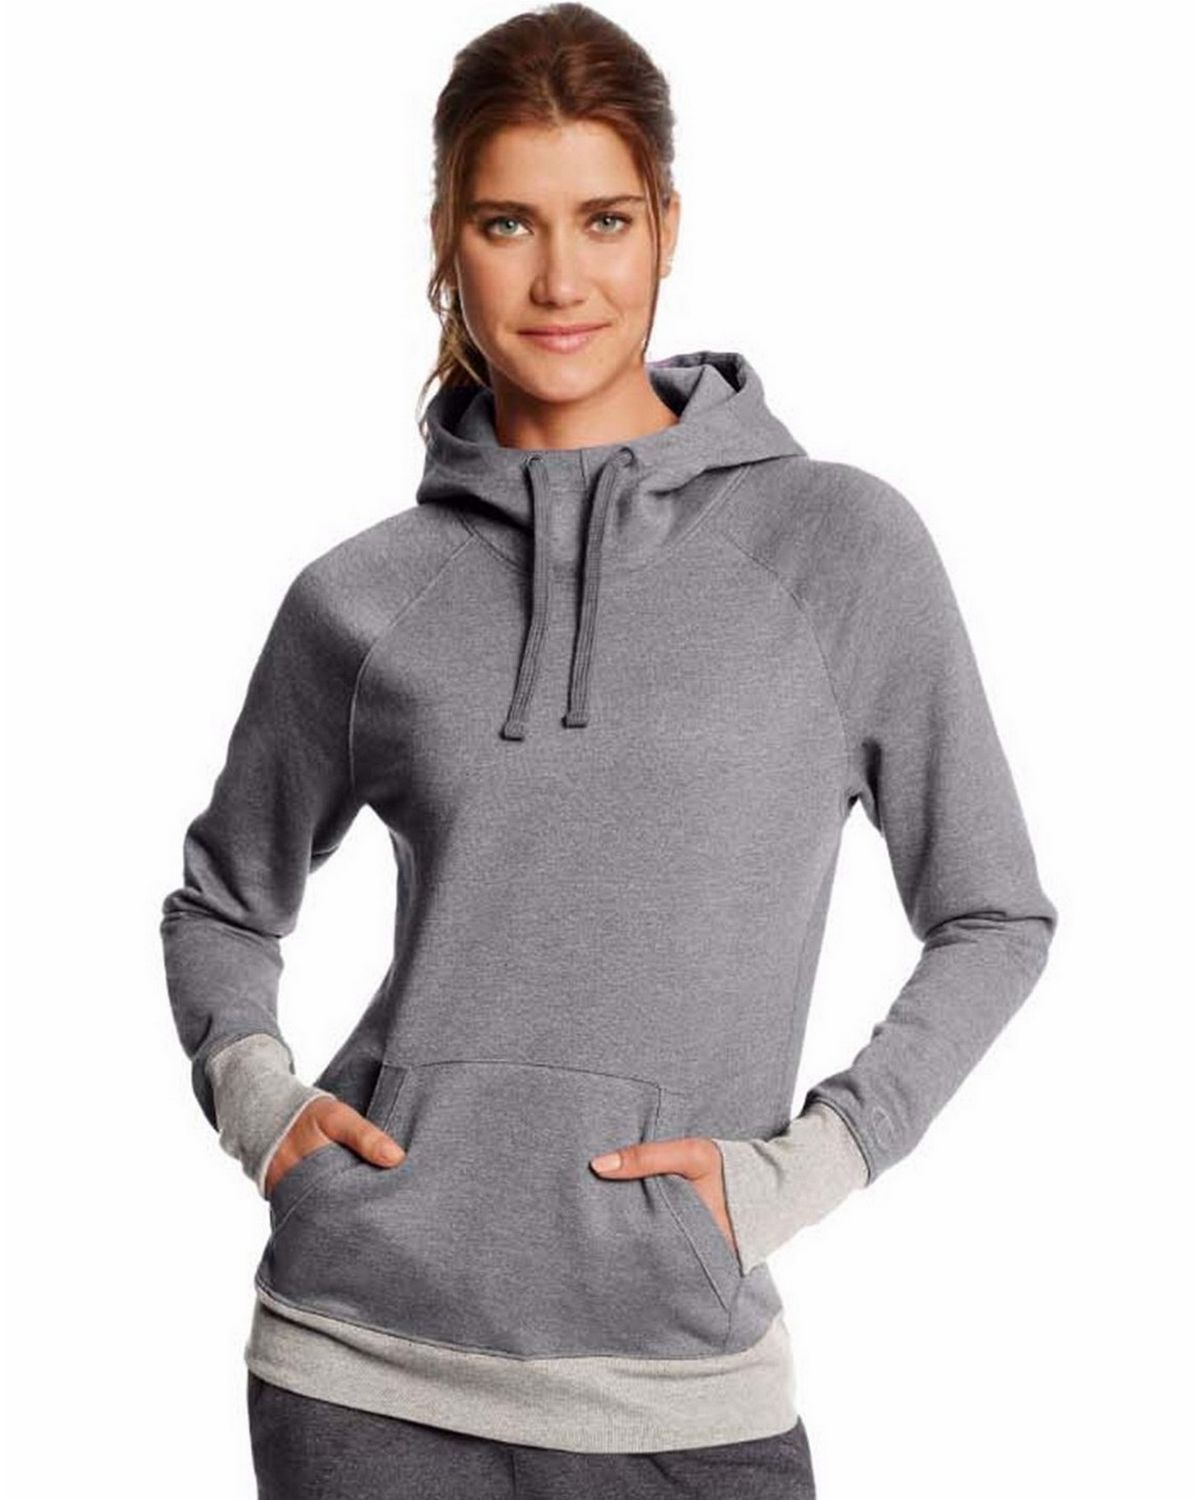 Champion W0934 Fleece Pullover Hoodie - Oxford Heather/Oatmeal Heather - S W0934